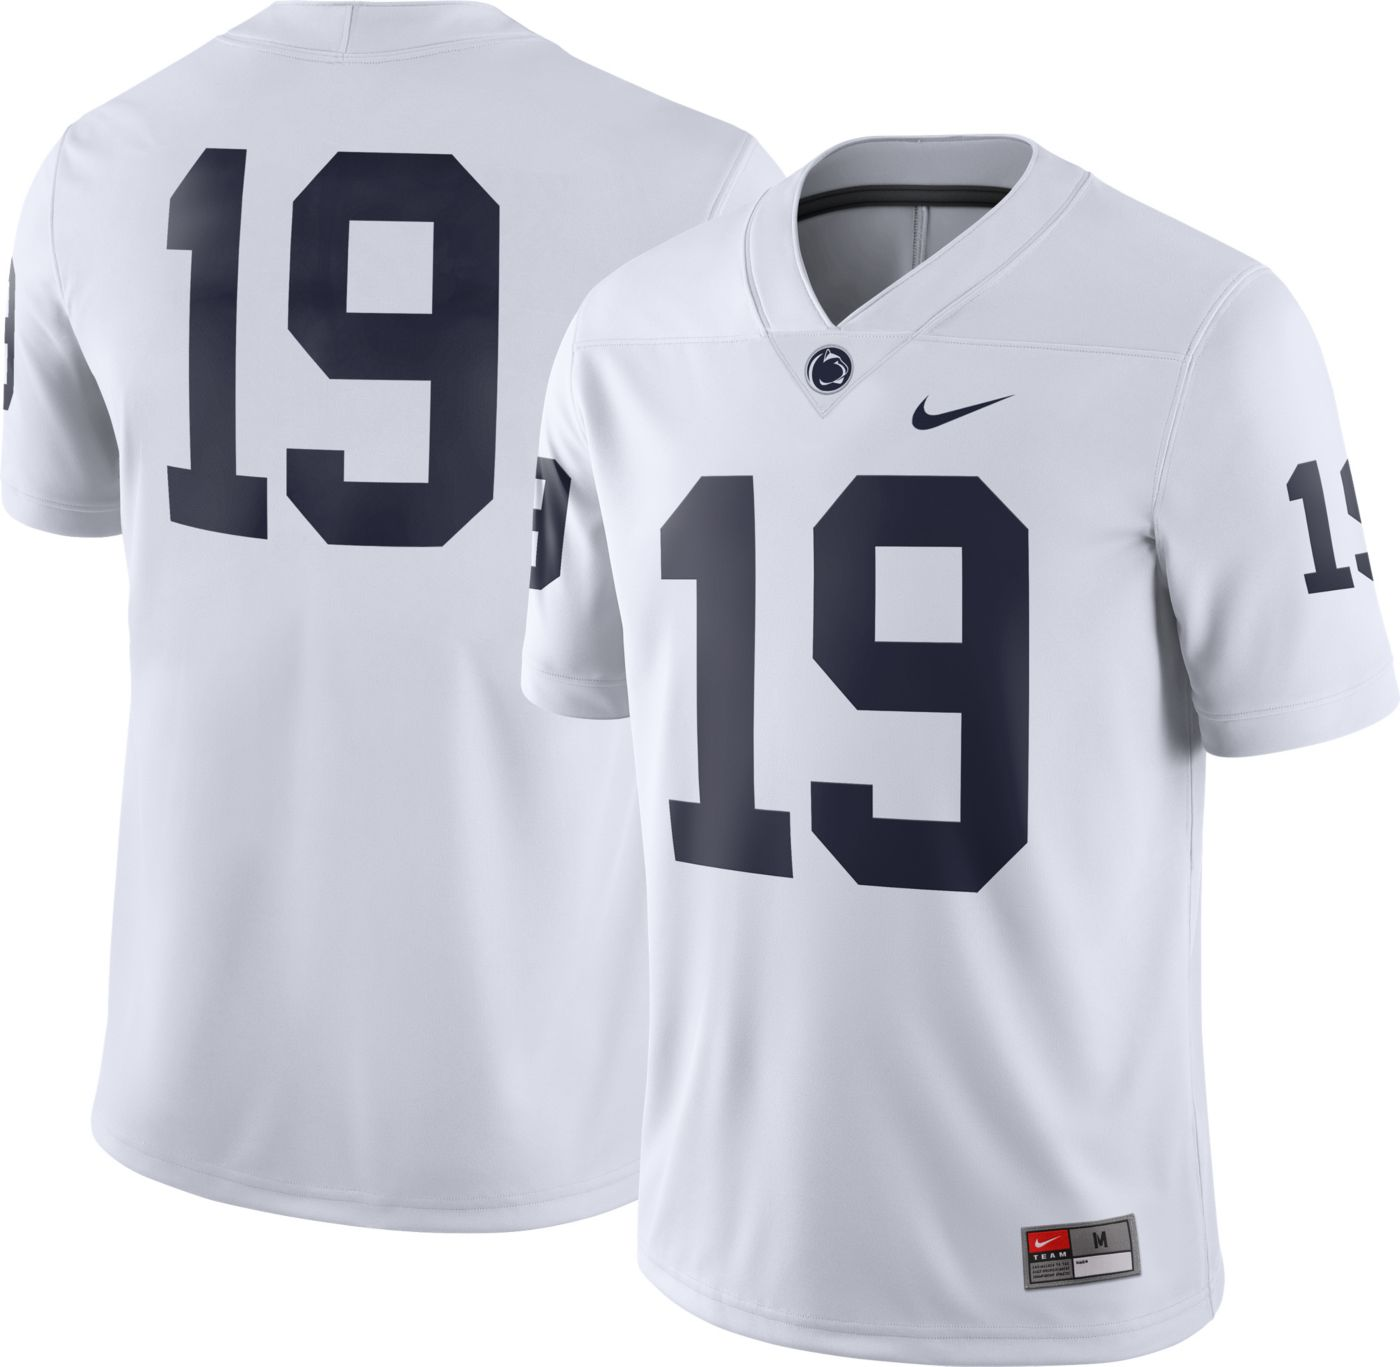 Nike Men's Penn State Nittany Lions #19 Dri-FIT Game Football White Jersey